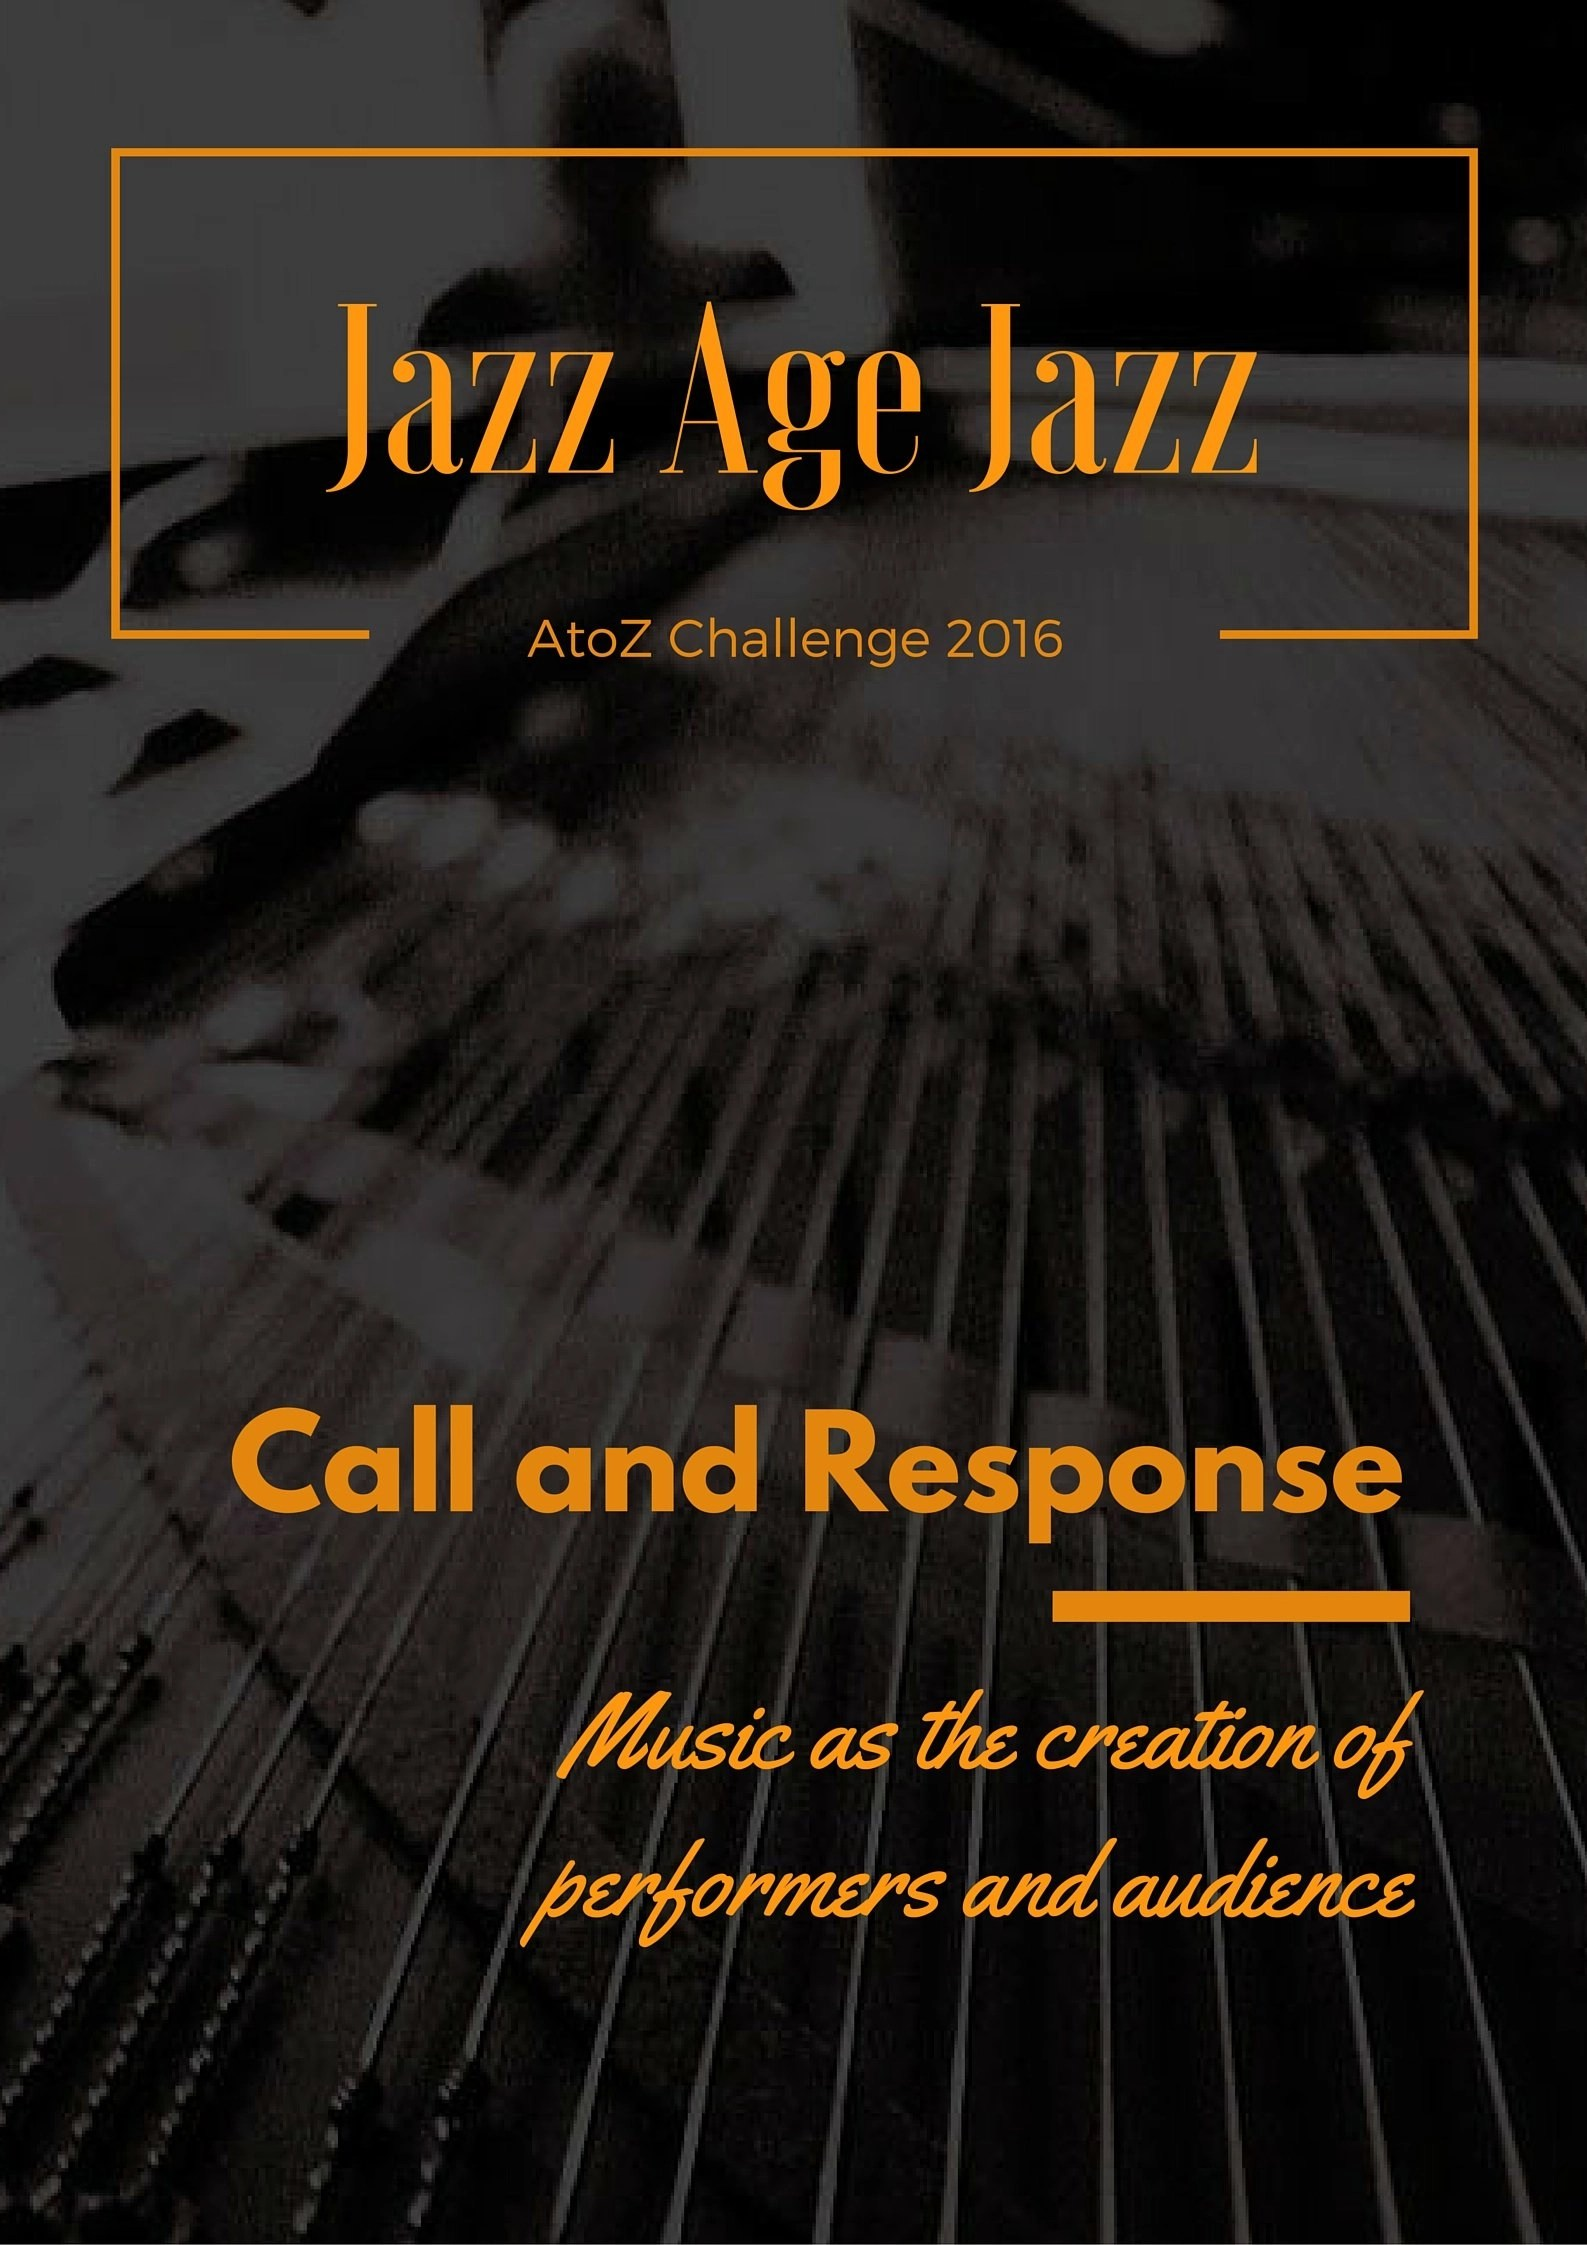 Jazz Age Jazz - Call and Response: music as the creation of performers and audience